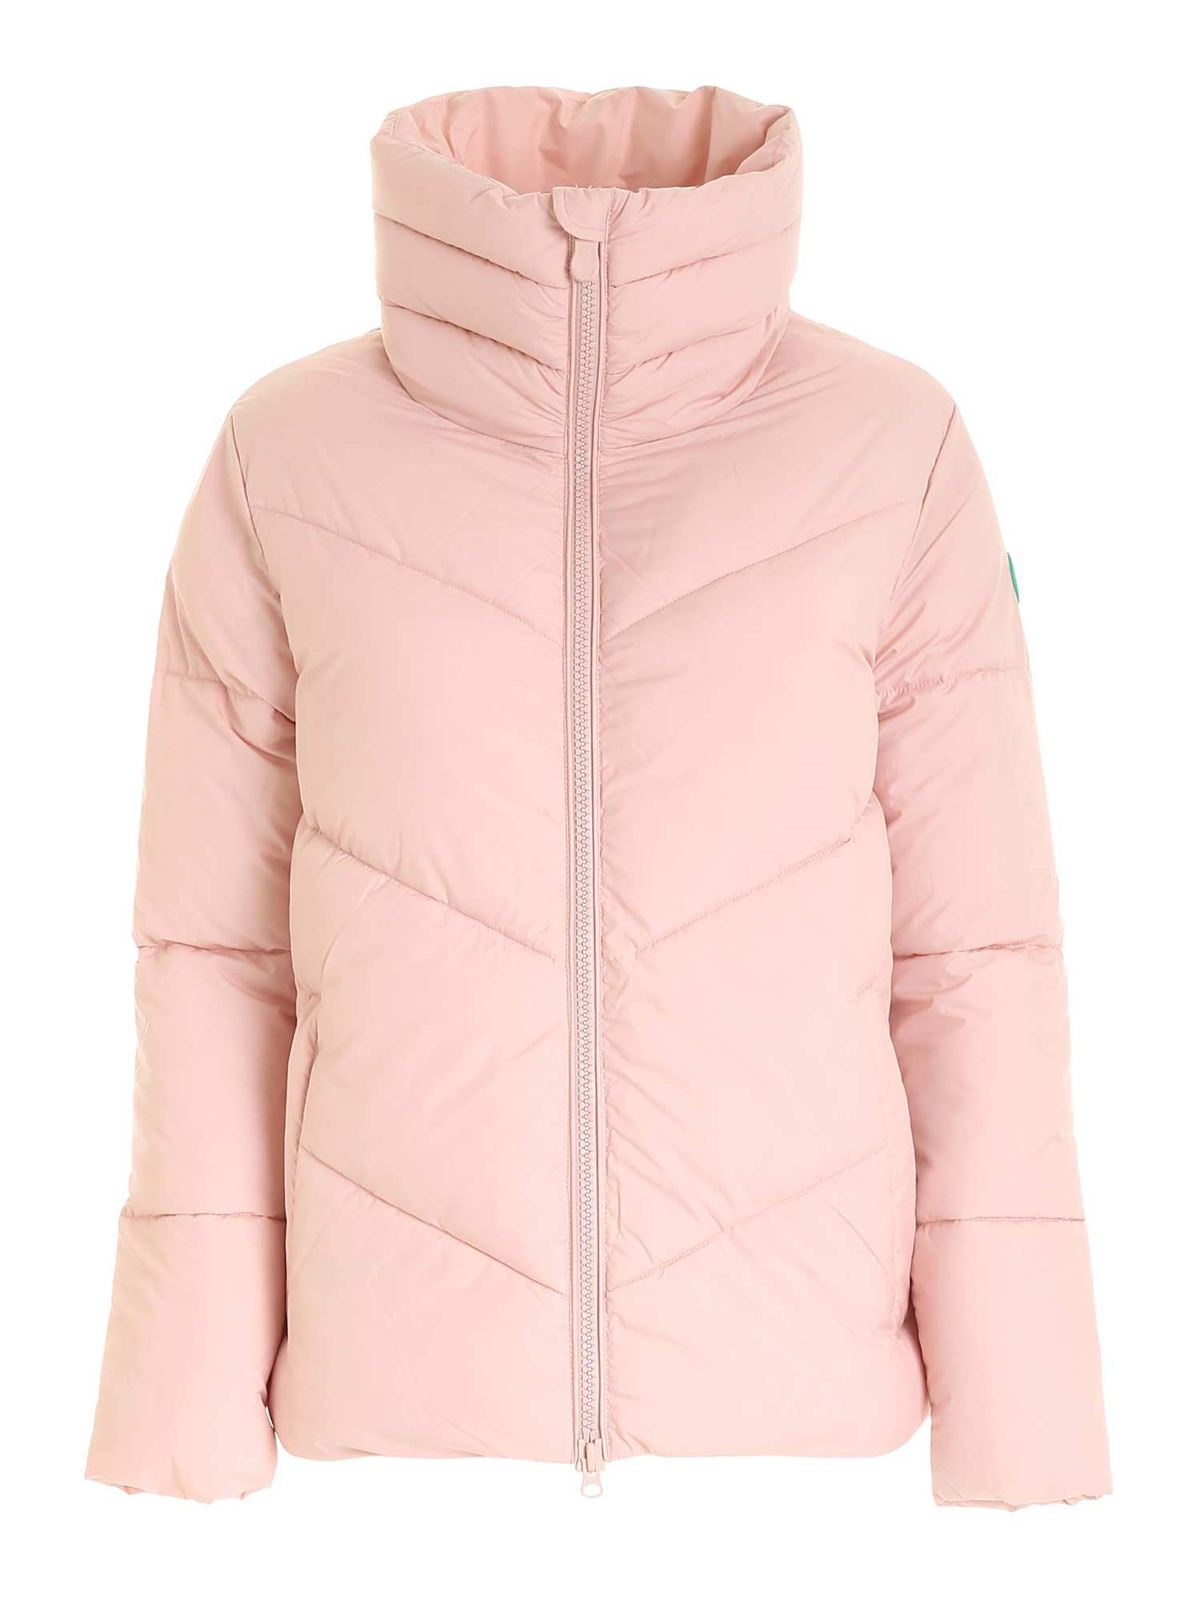 Save The Duck LOGO PATCH PUFFER JACKET IN POWDER PINK